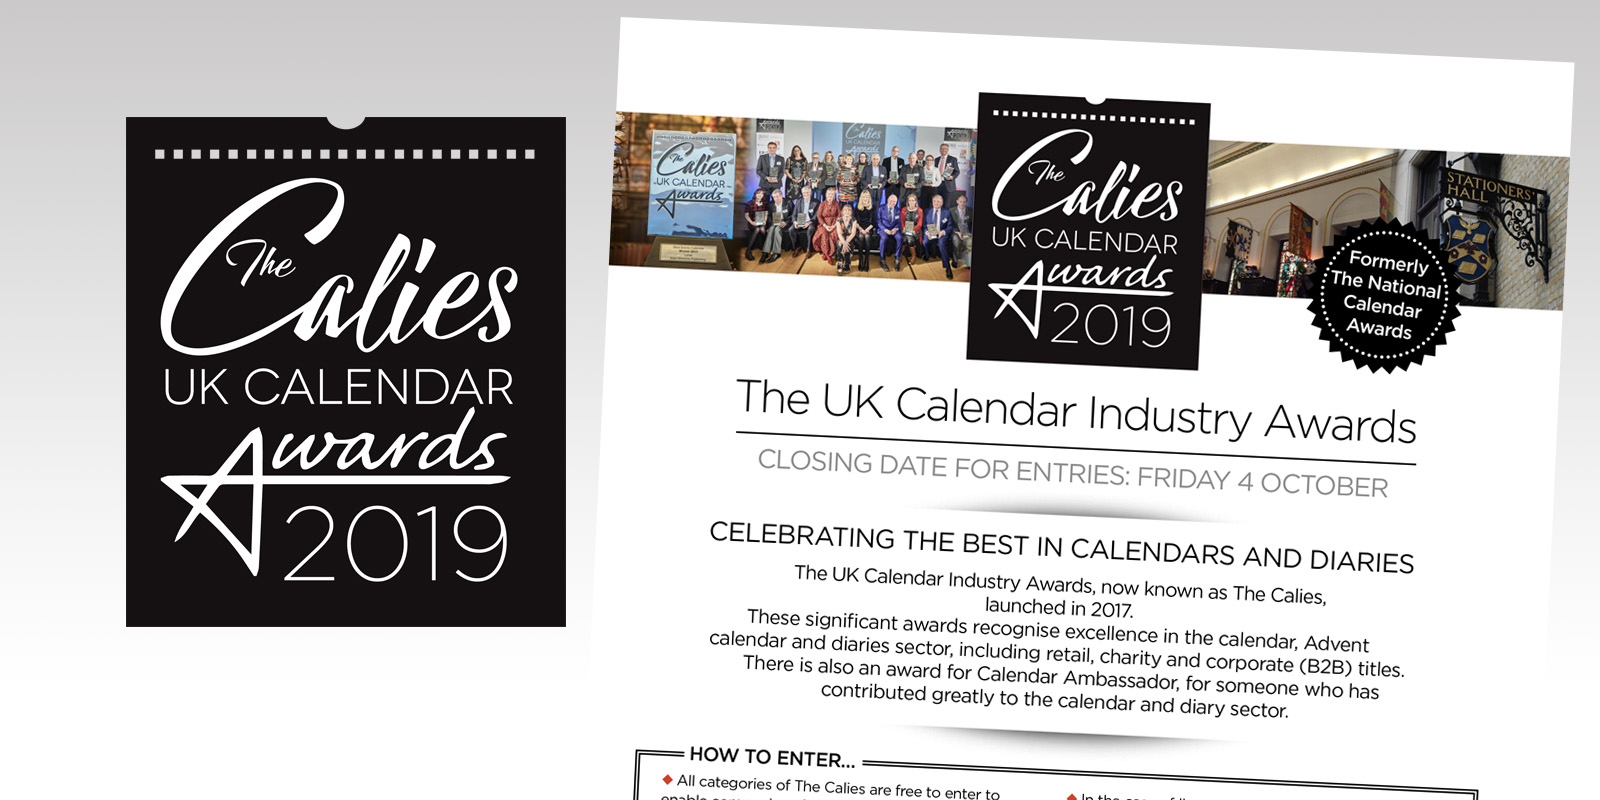 Above: The closing date for entries to The Calies is October 4.